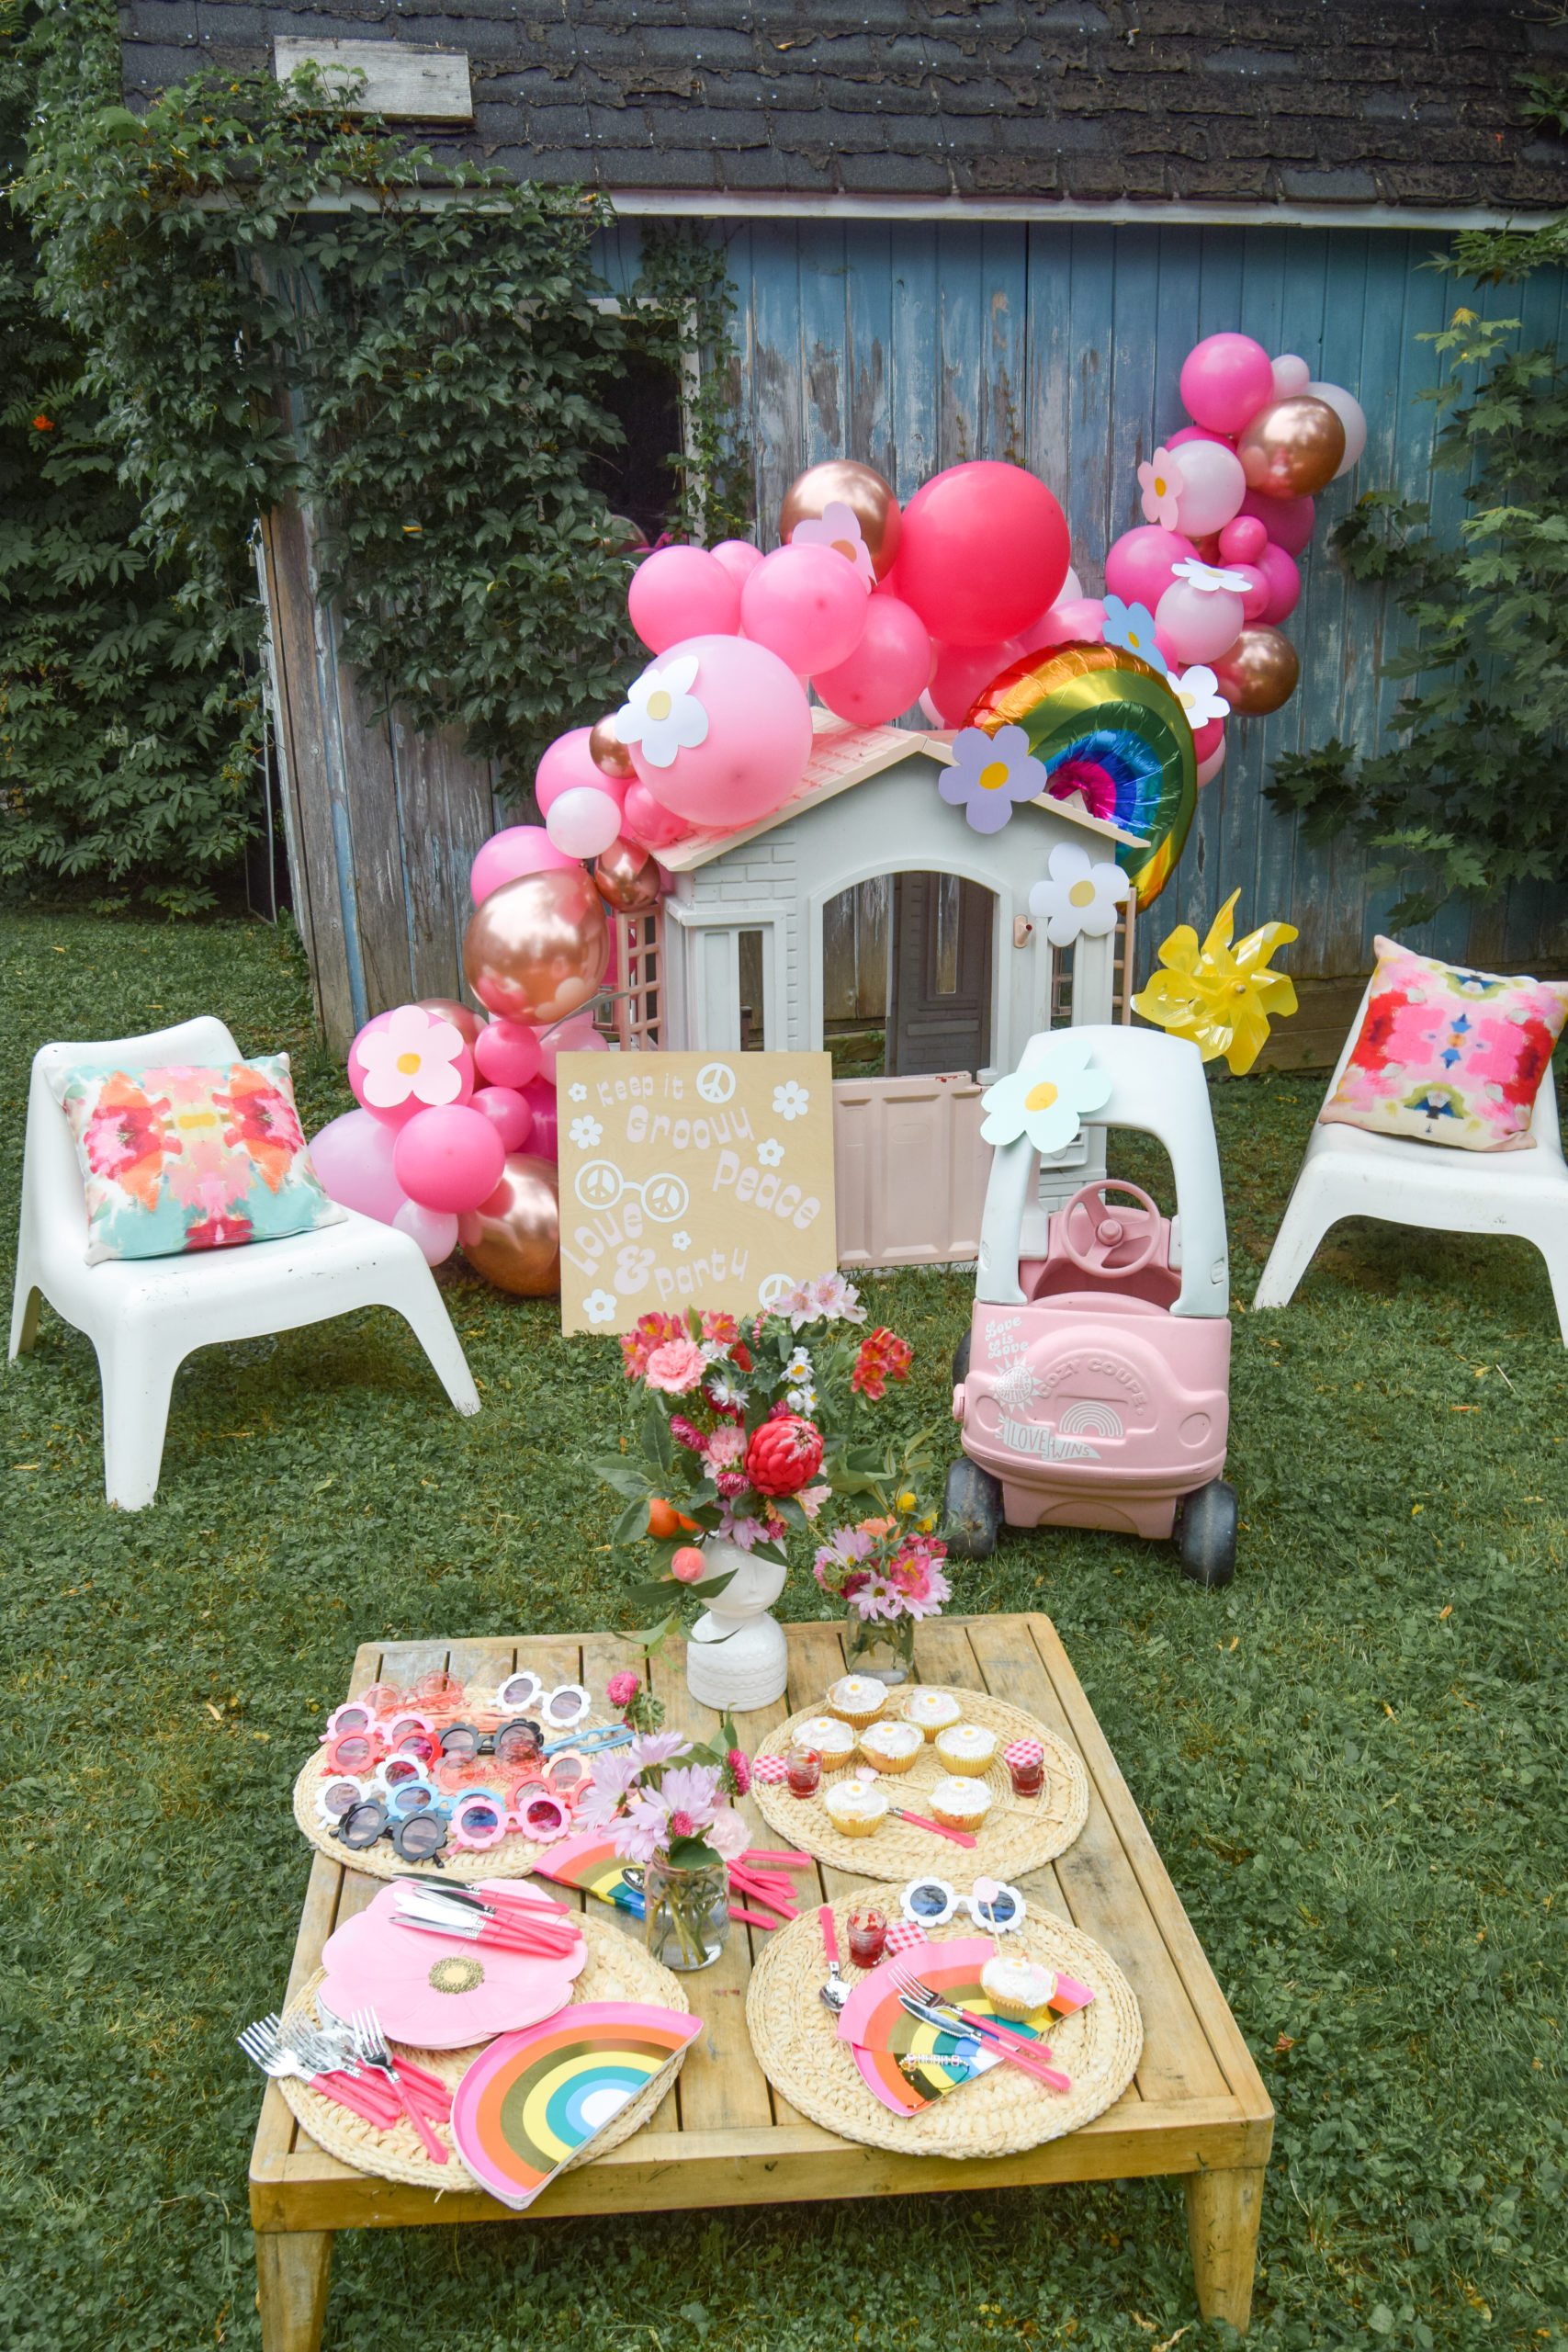 It's time for some groovy diy birthday party decor! Using good old fashioned DIYs and a few new kits from FISKARS, I created a groovy party.